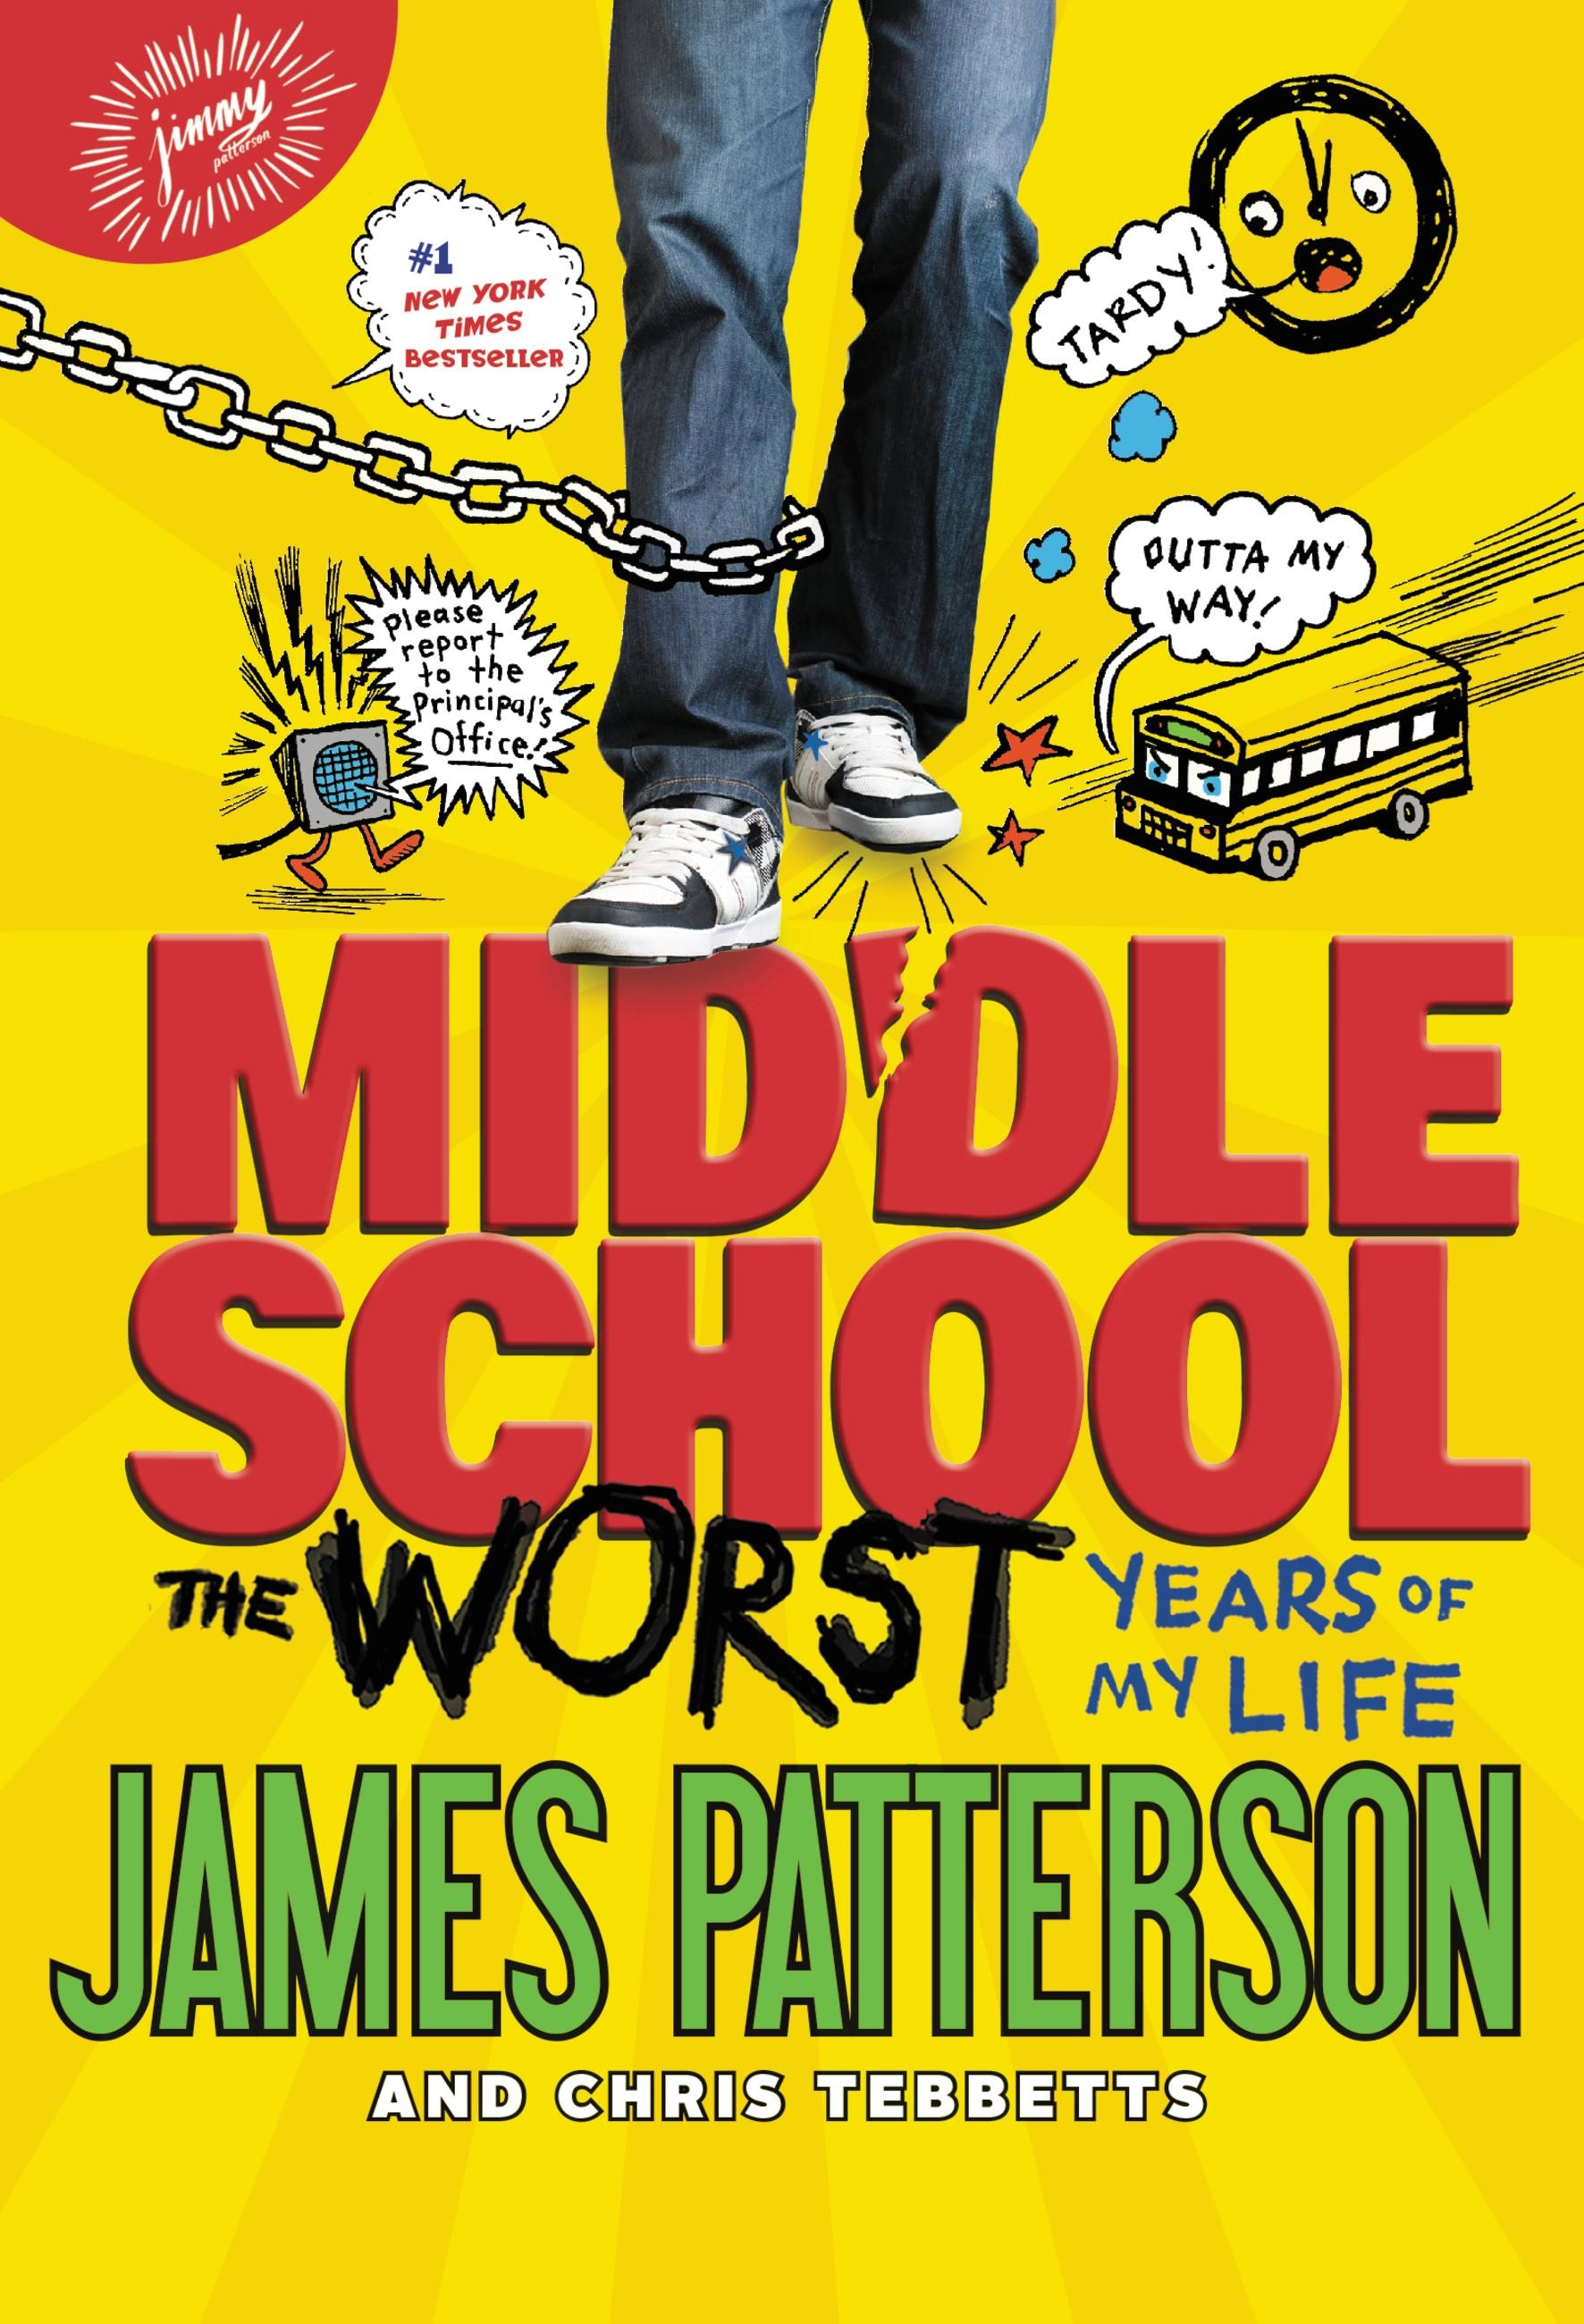 High School Book Cover : Middle school the worst years of my life little brown